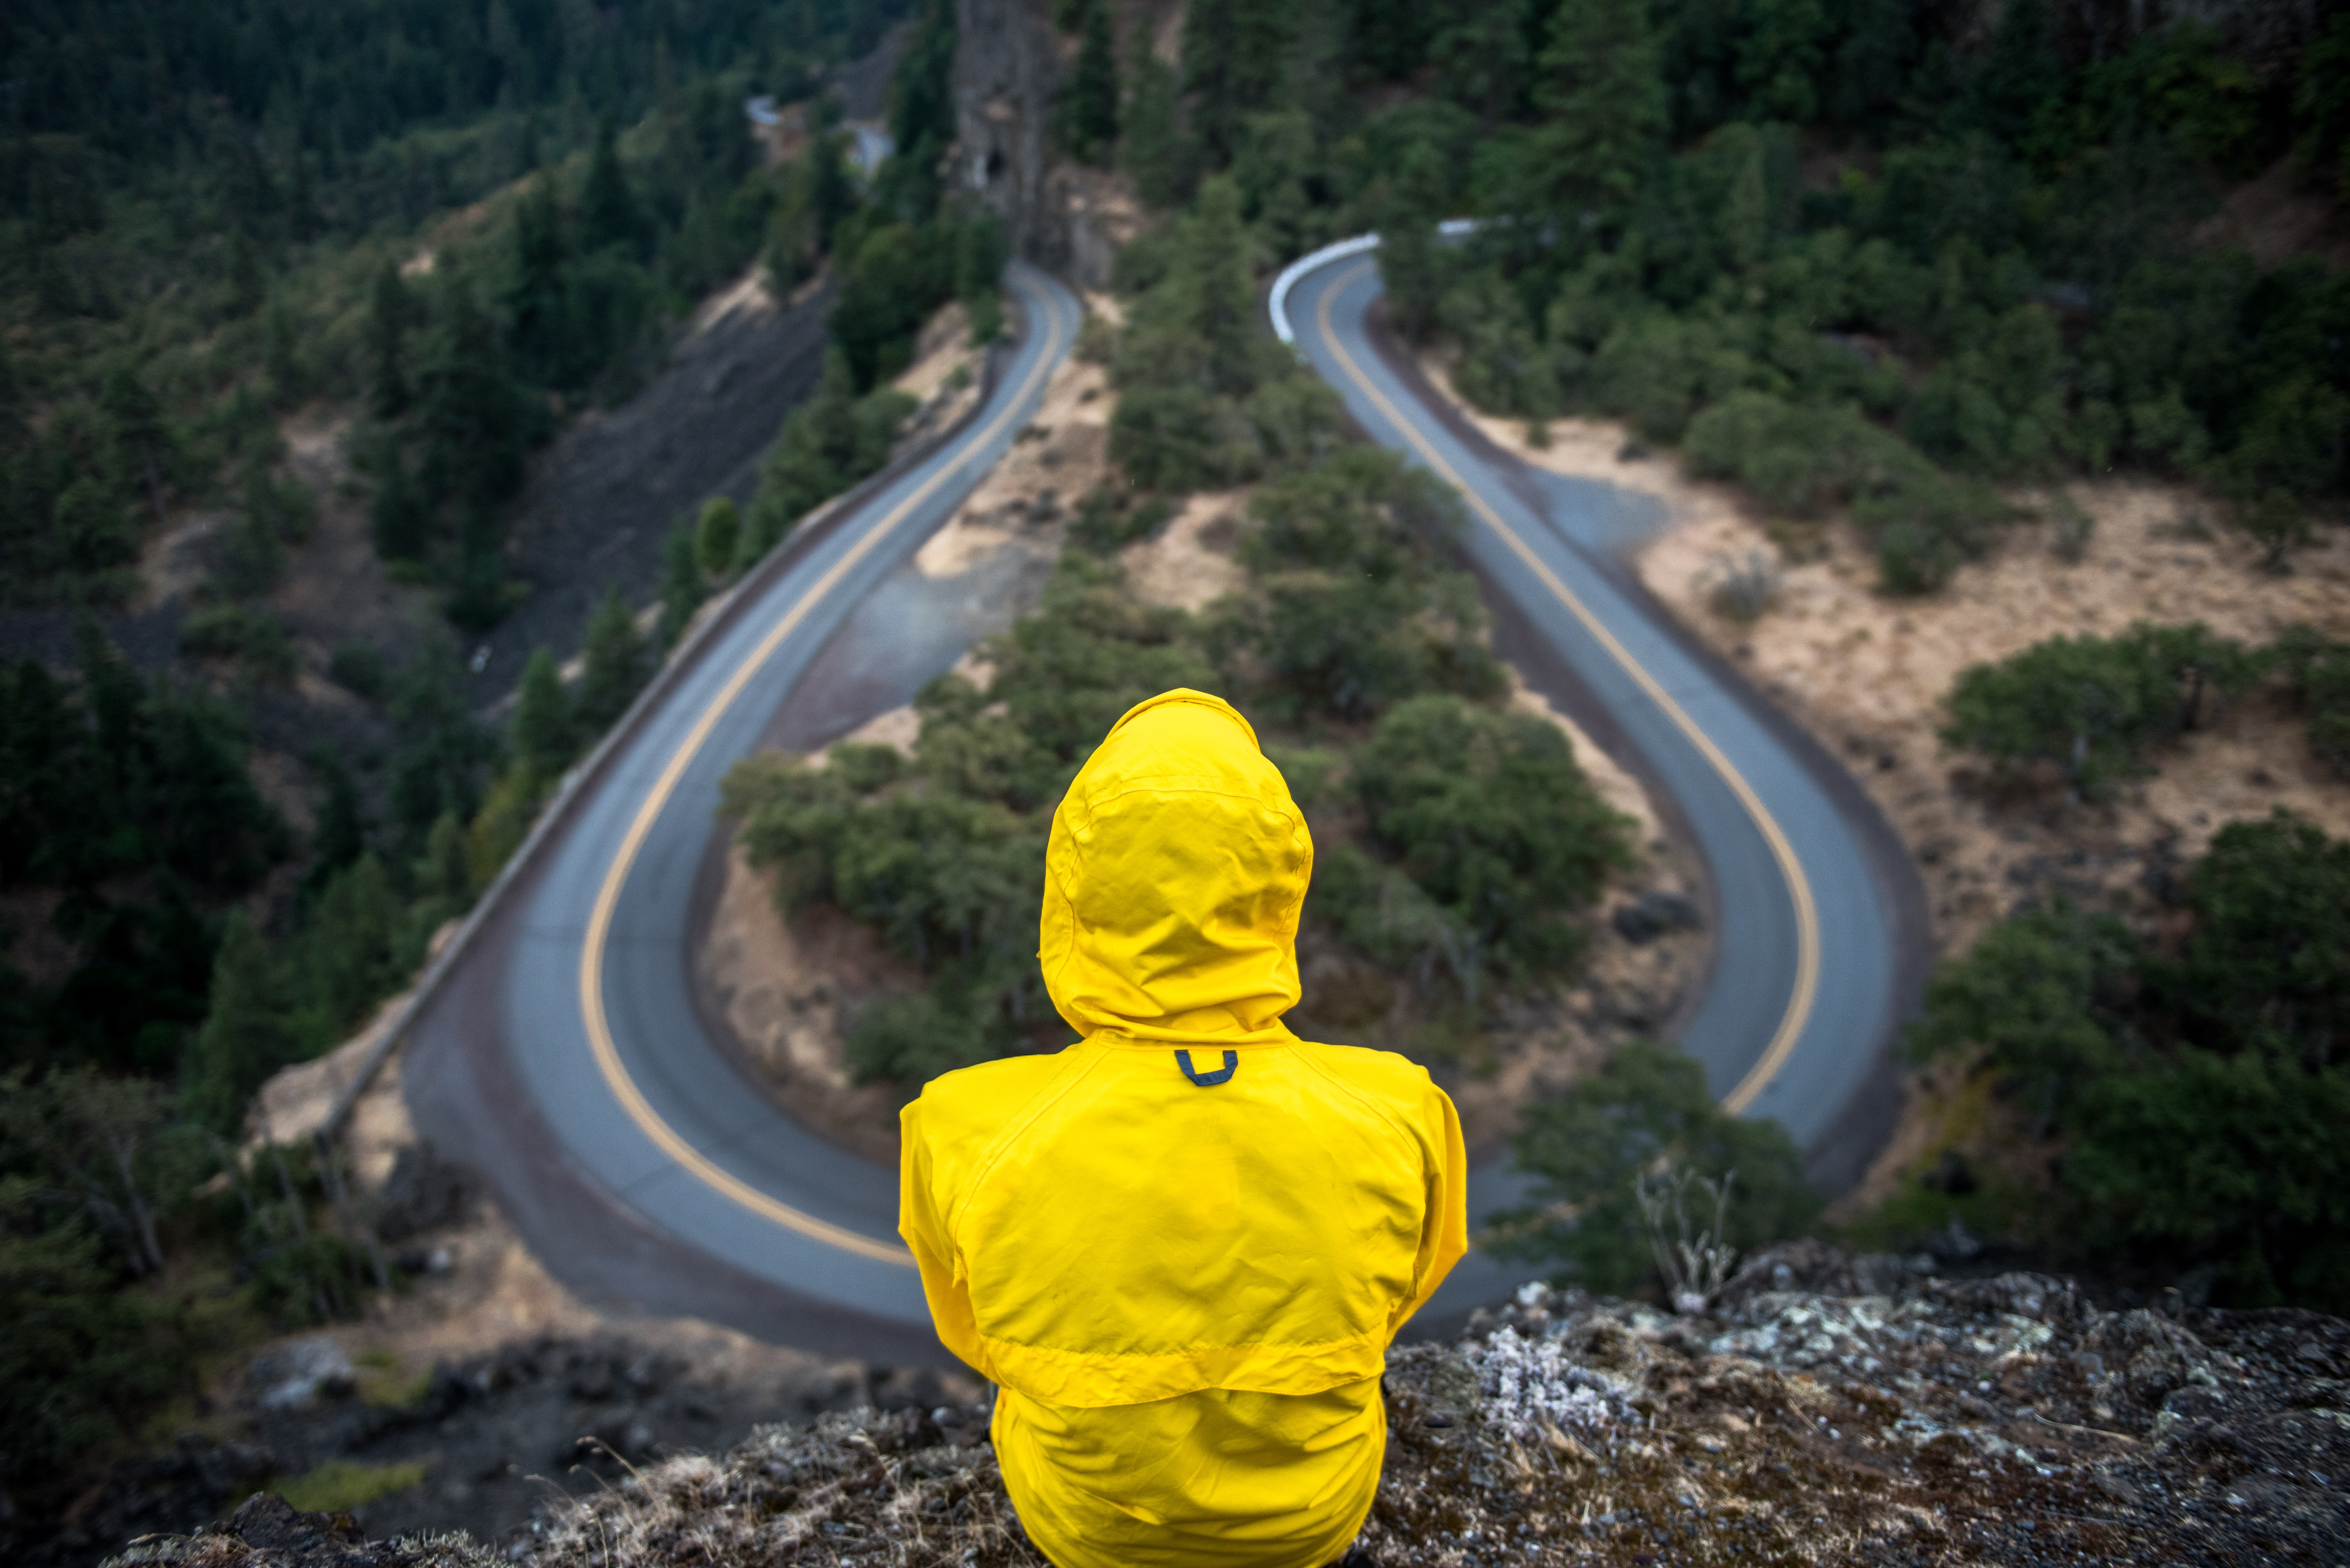 A person in a yellow jacket with a hood sitting on a rock over a U-turn in a road